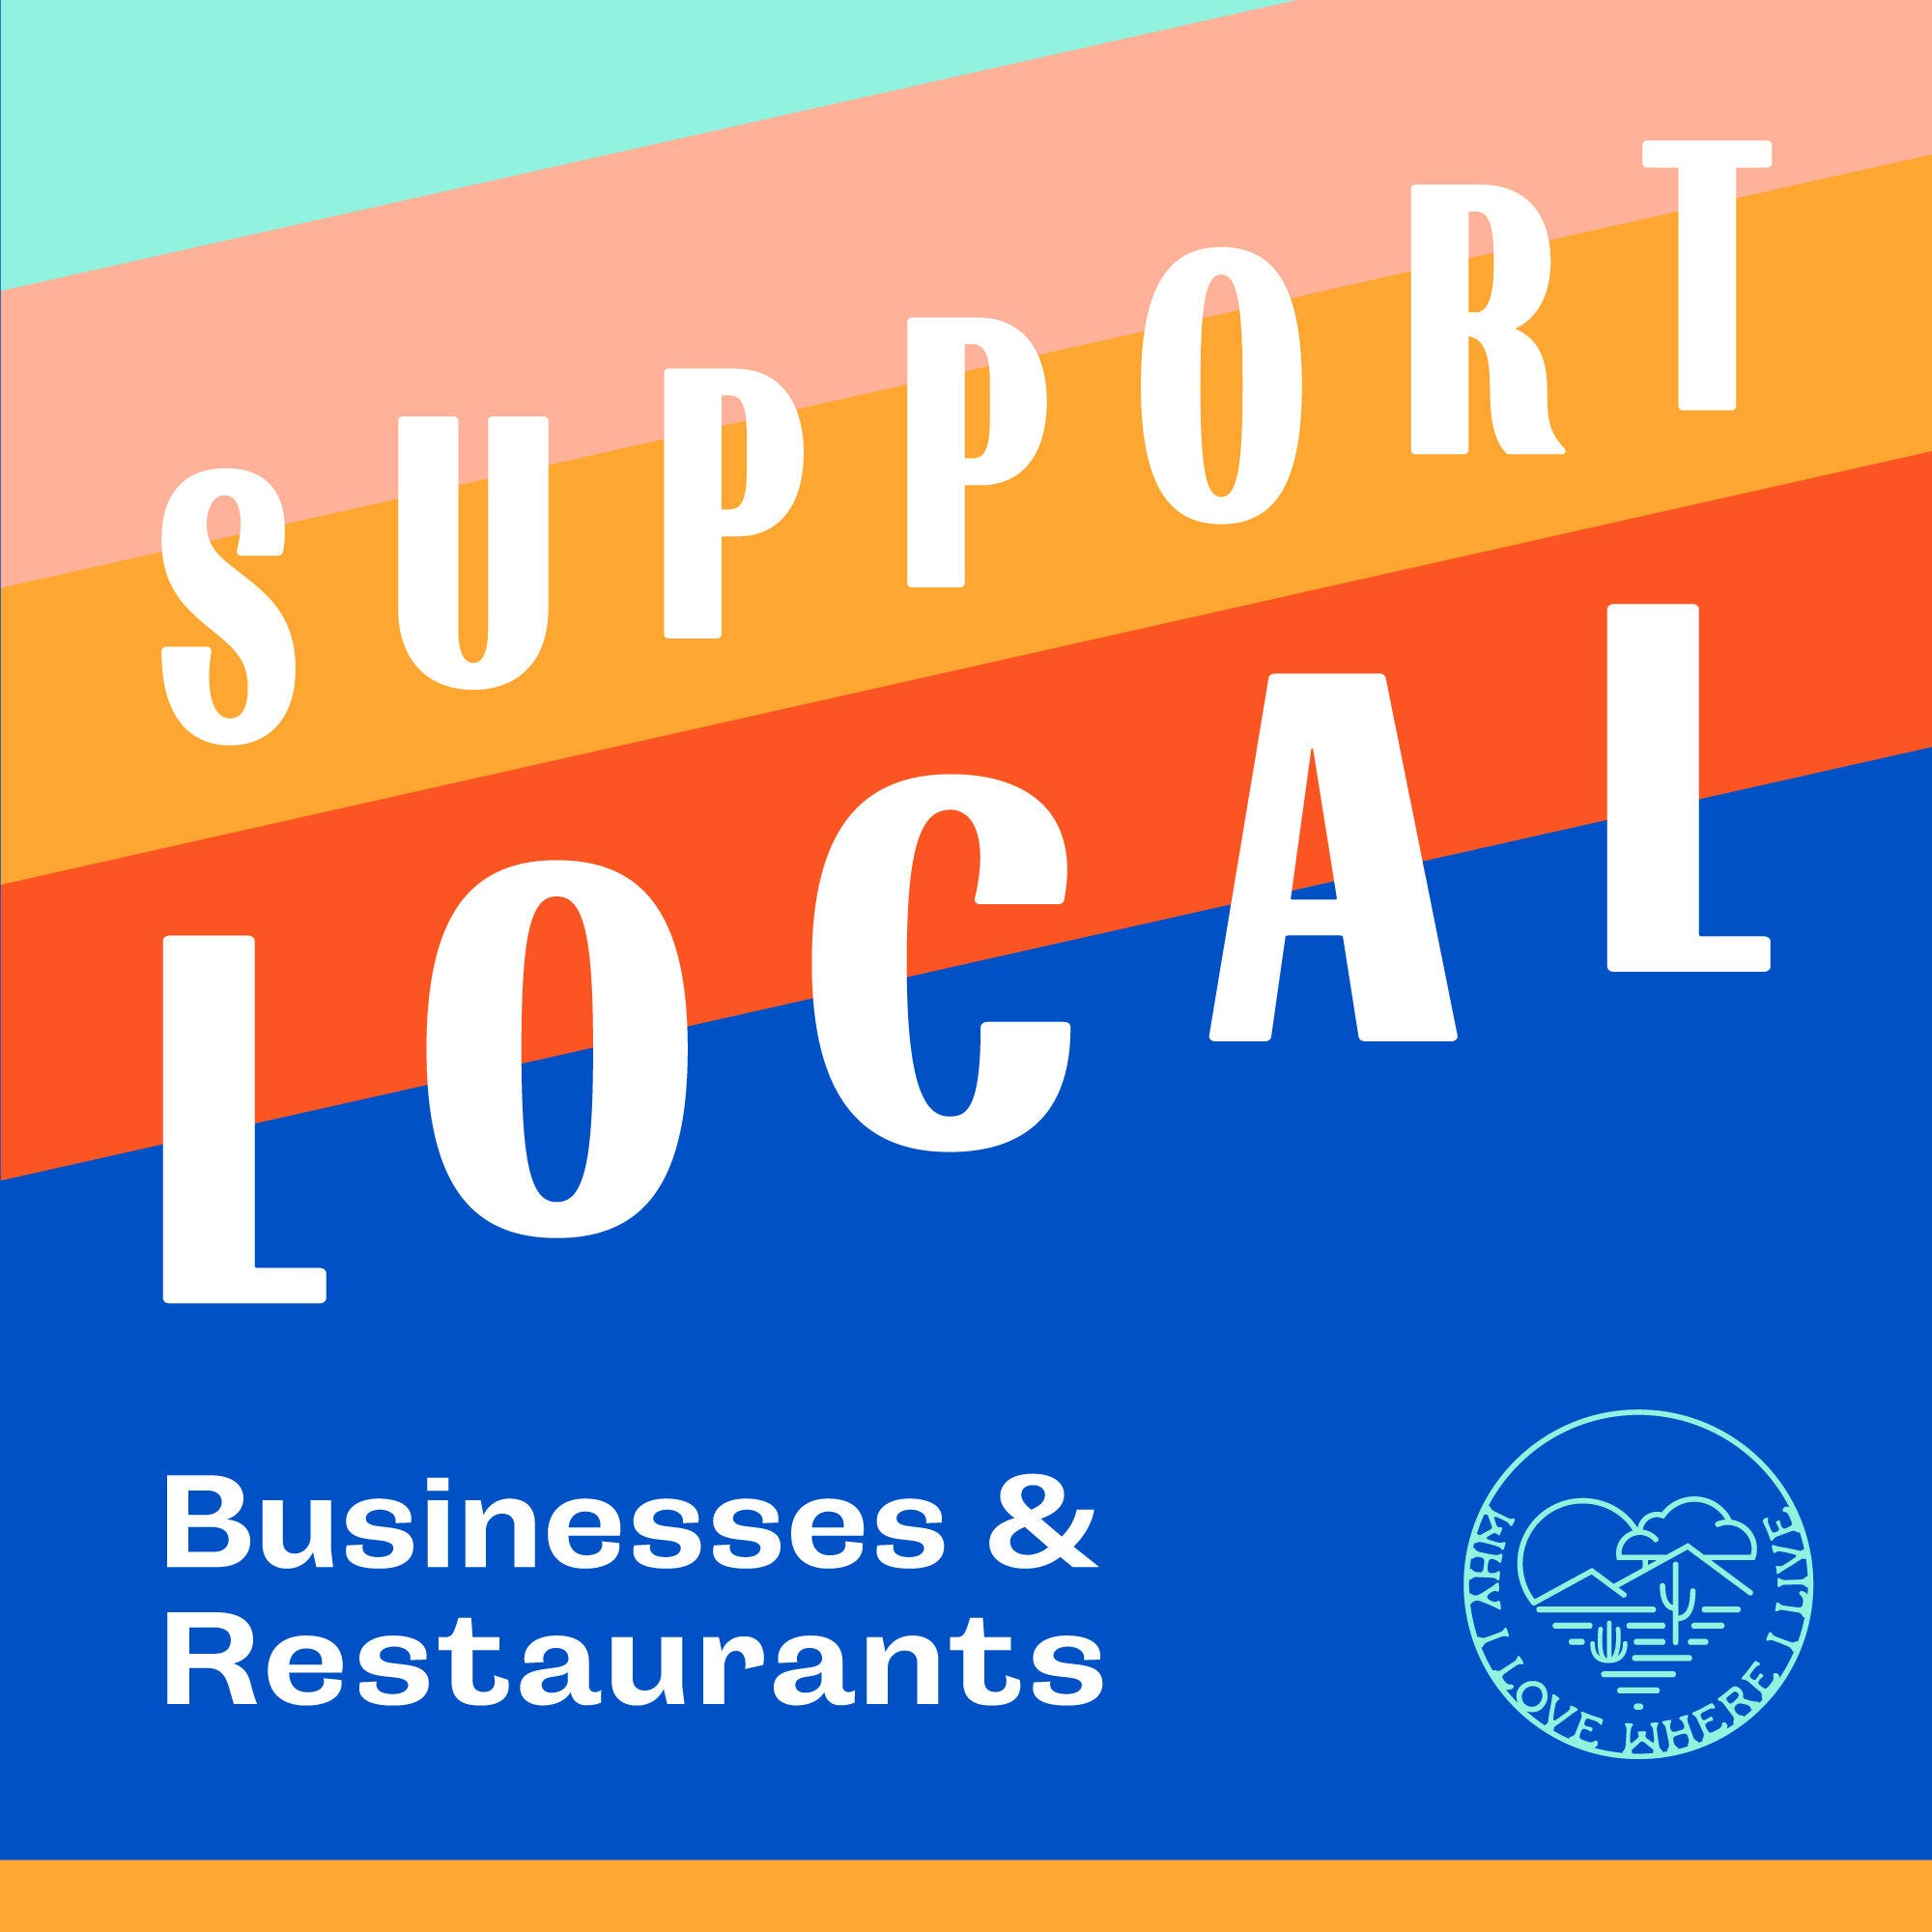 Supporting Local Businesses & Restaurants Through COVID-19